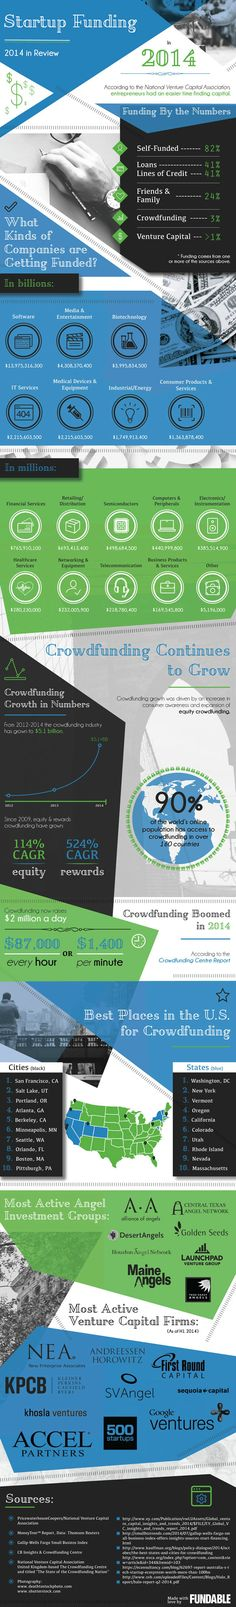 Startup Funding in 2014